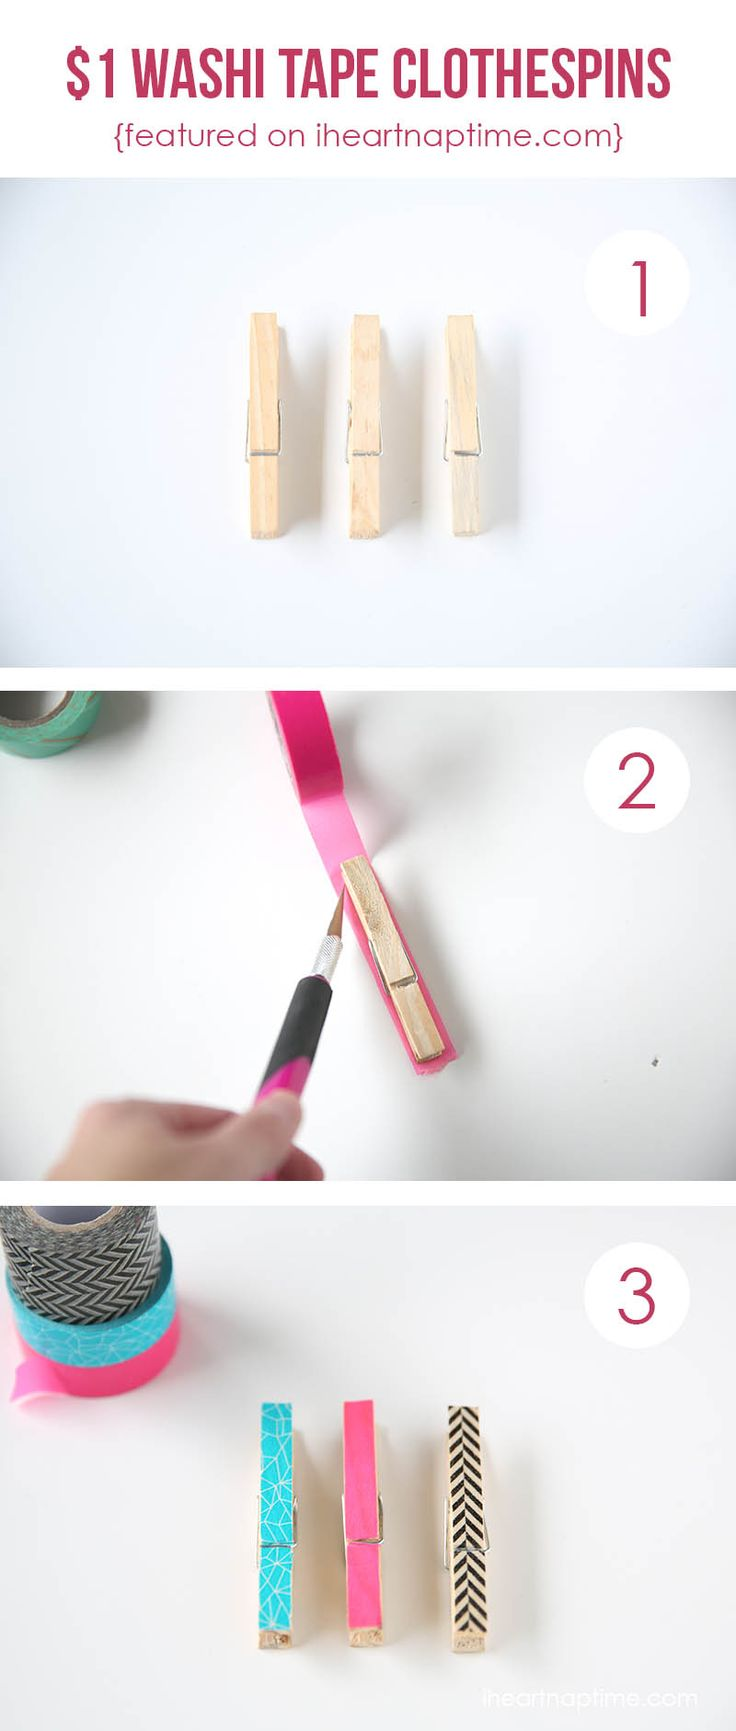 DIY Washi tape clothespins so simple and inexpensive to make!